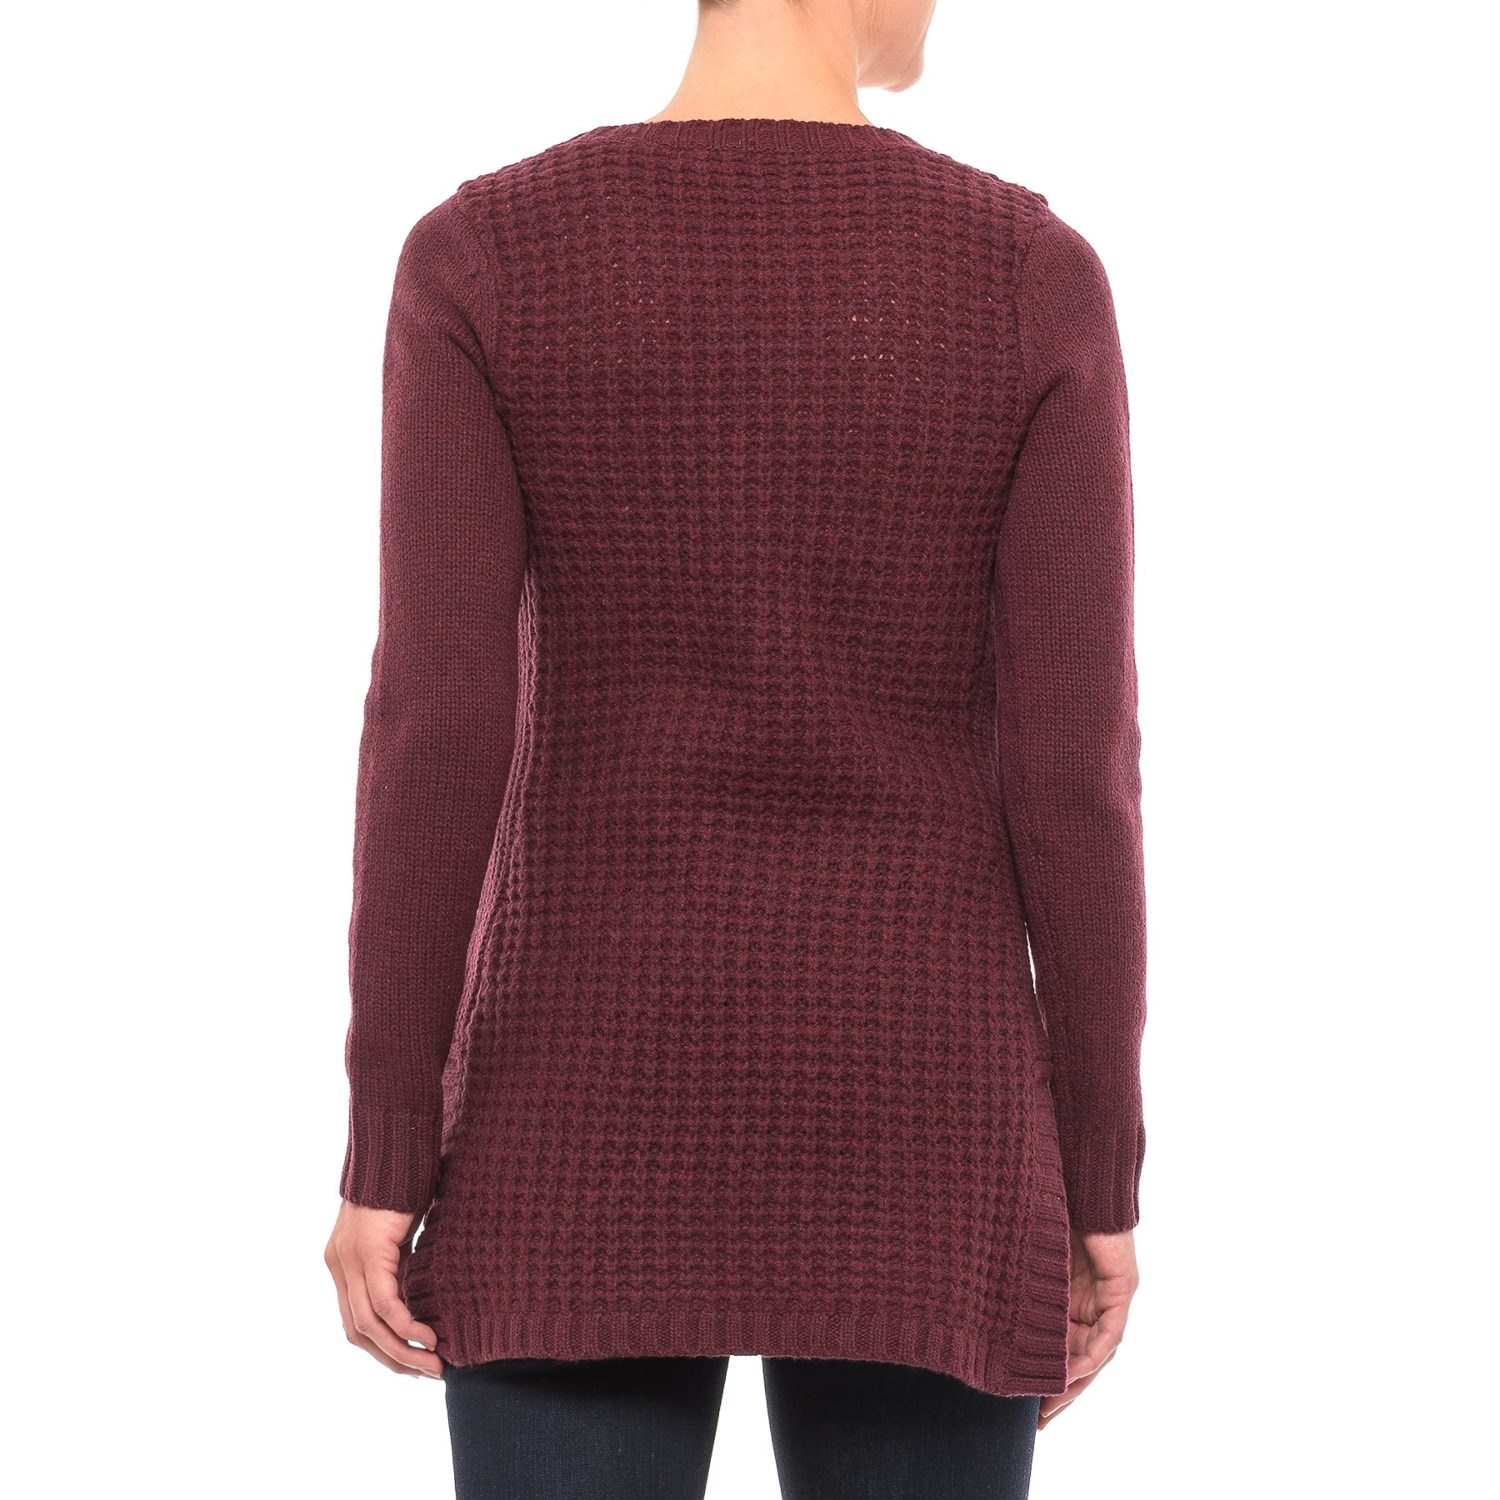 Toad&Co Kinley Tunic Sweater (For Women) - Save 51%